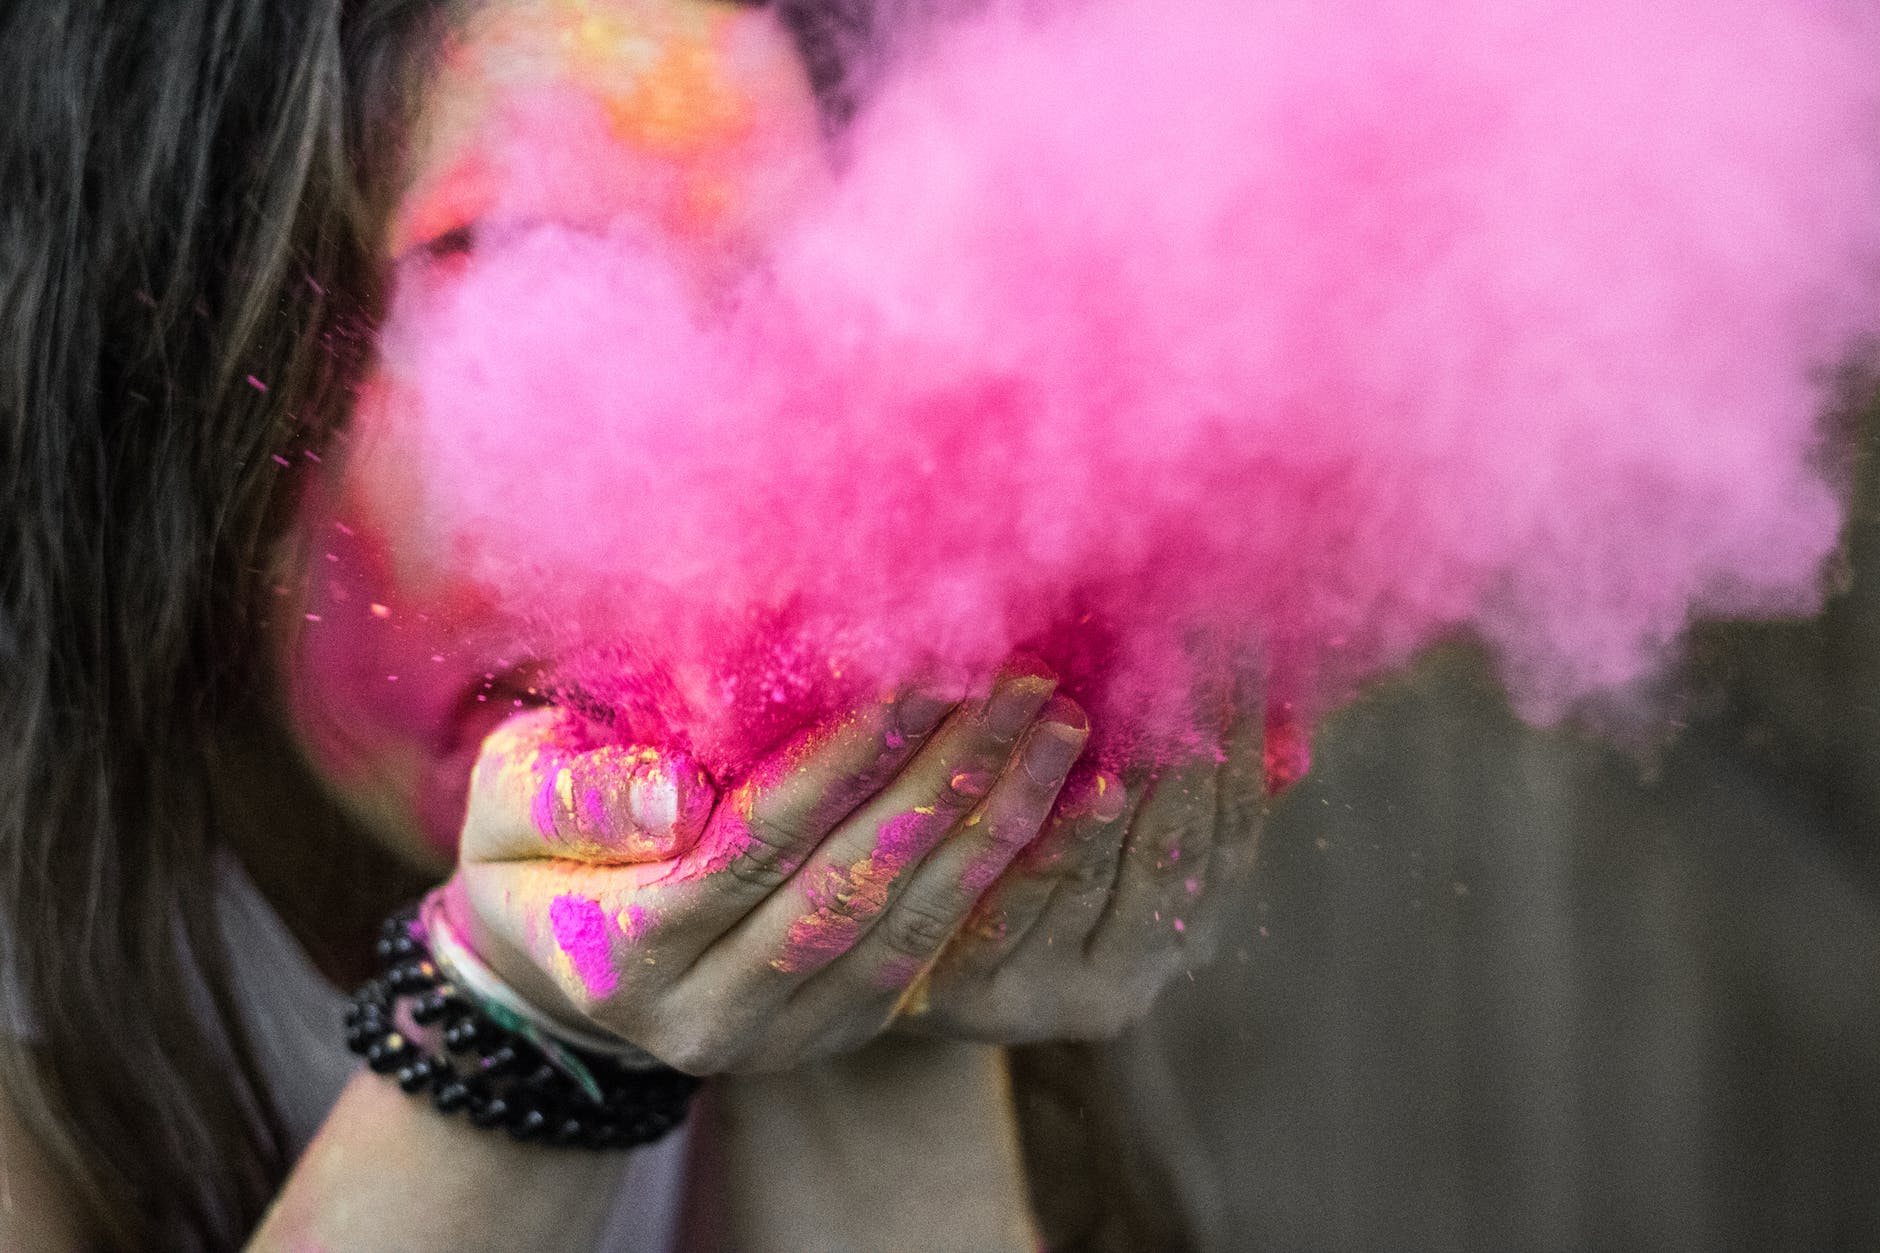 Woman blows a plume of pink colour